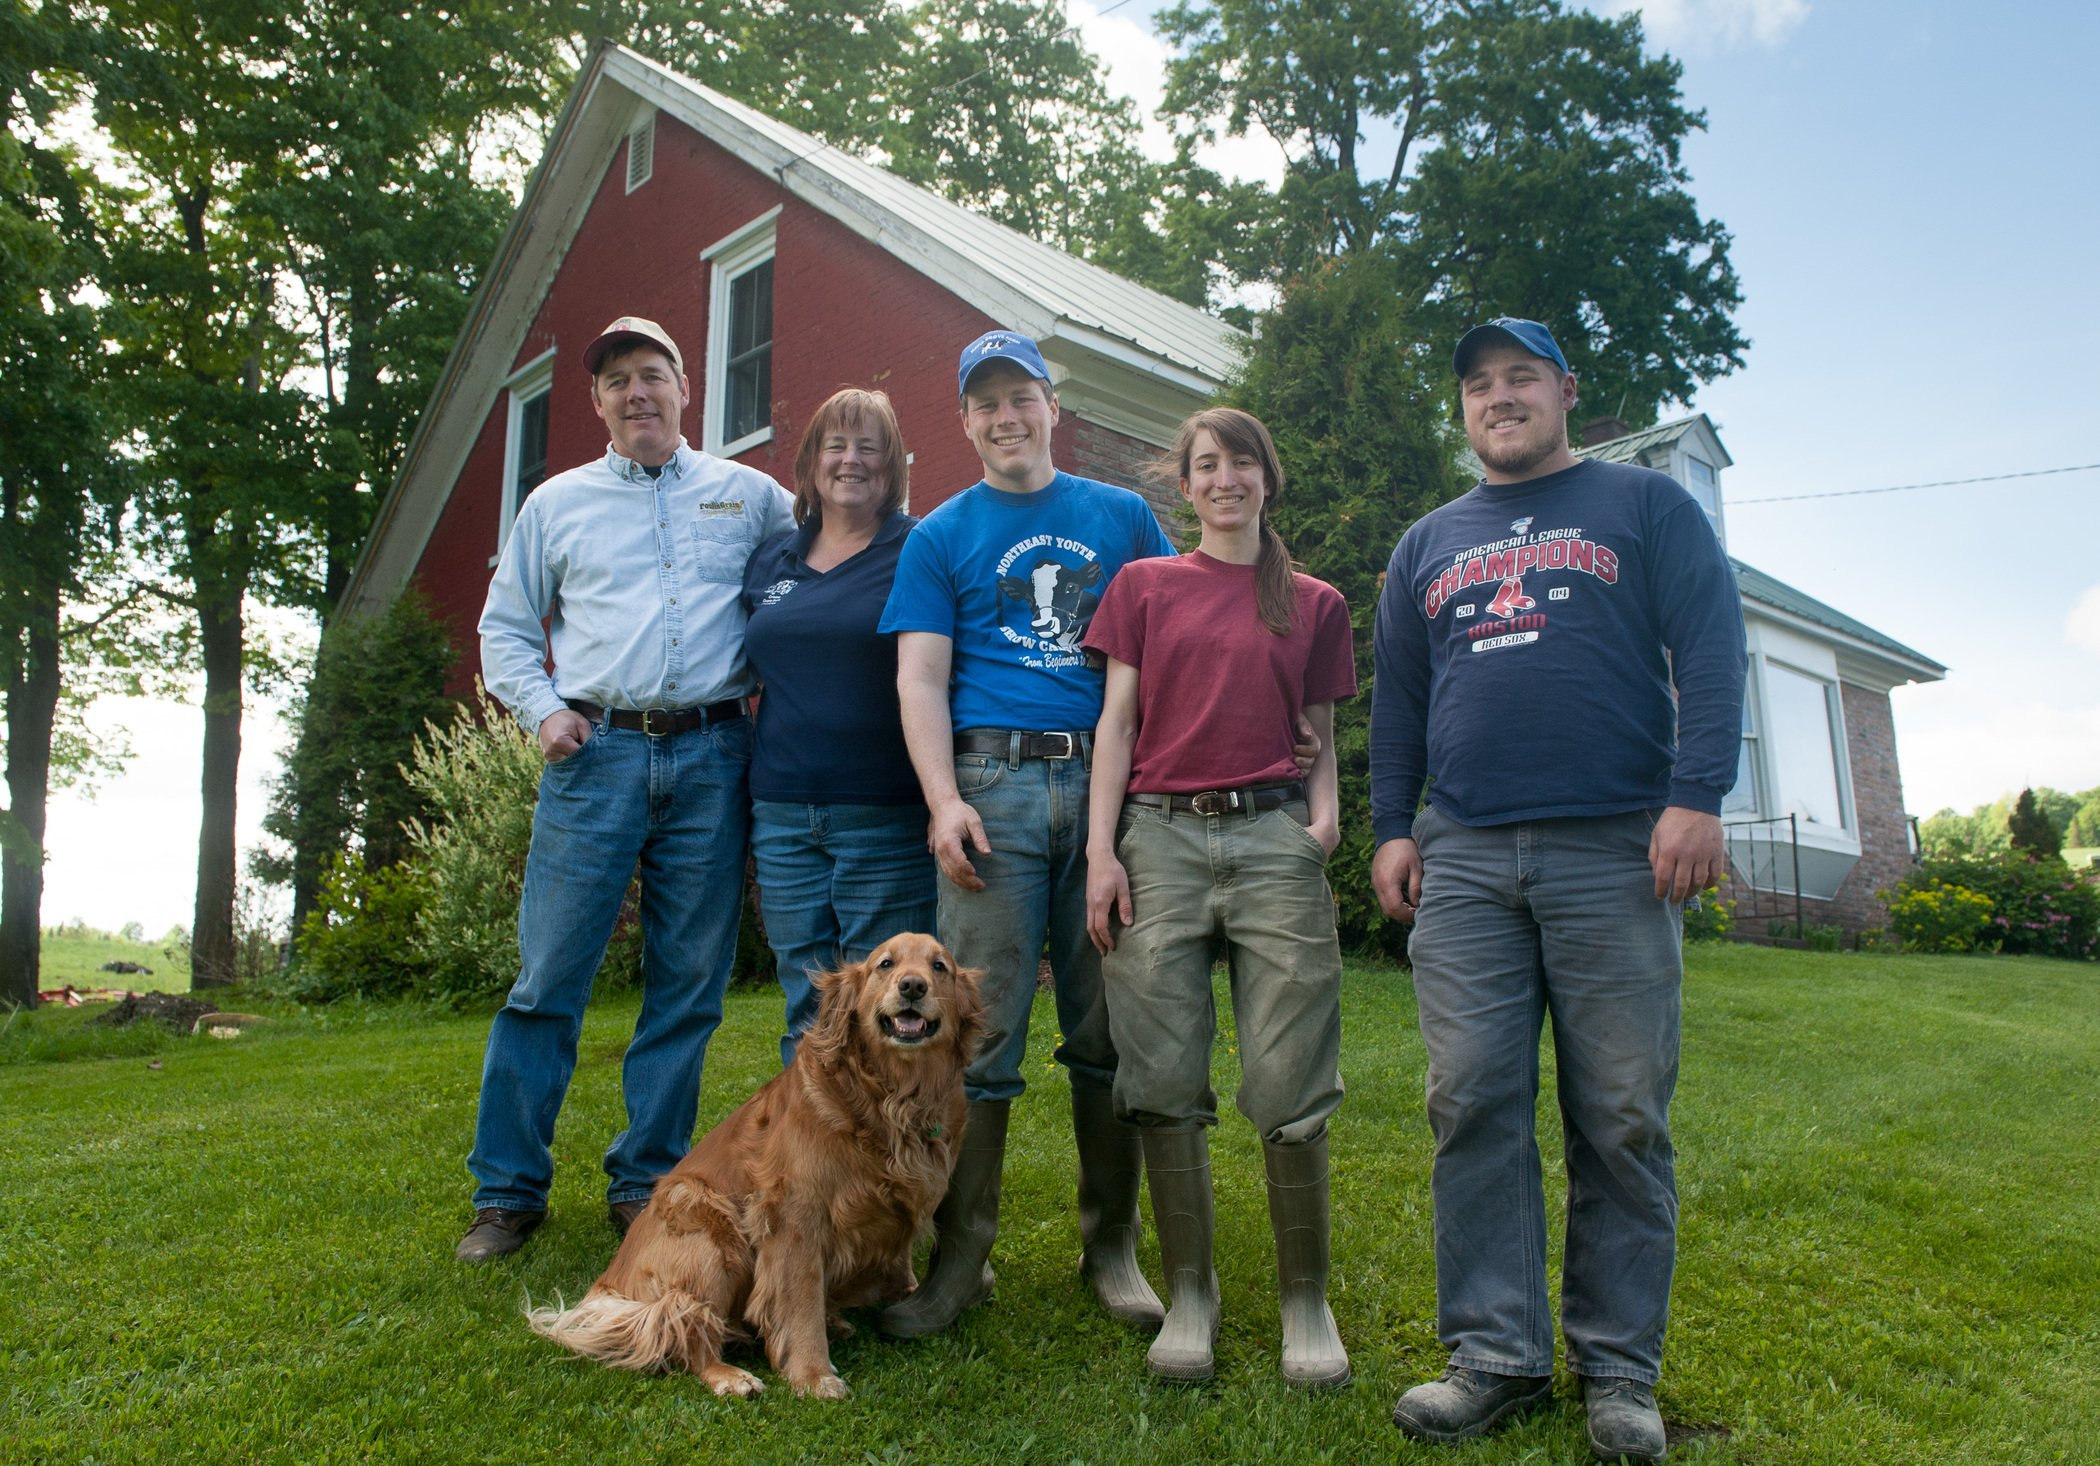 Family of five farmers and a dog standing in front of their red house